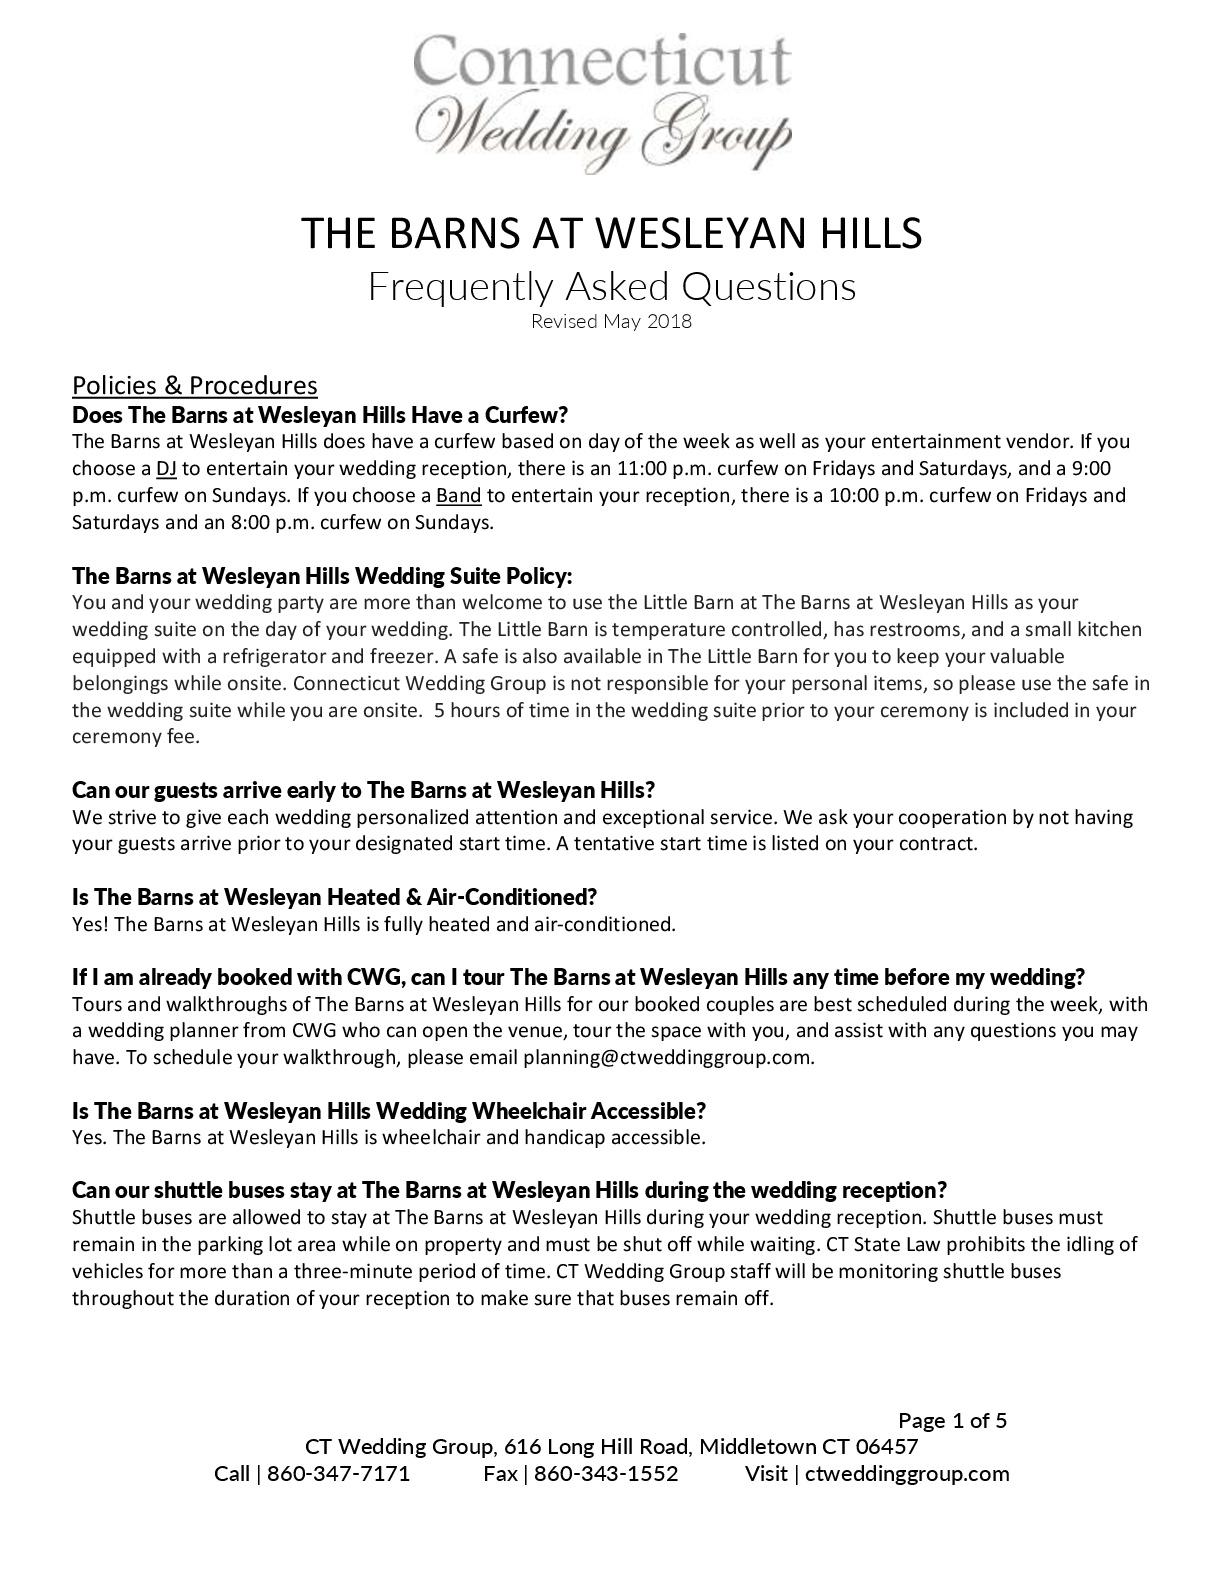 Frequently-Asked-Questions-Barns-May-2018-001